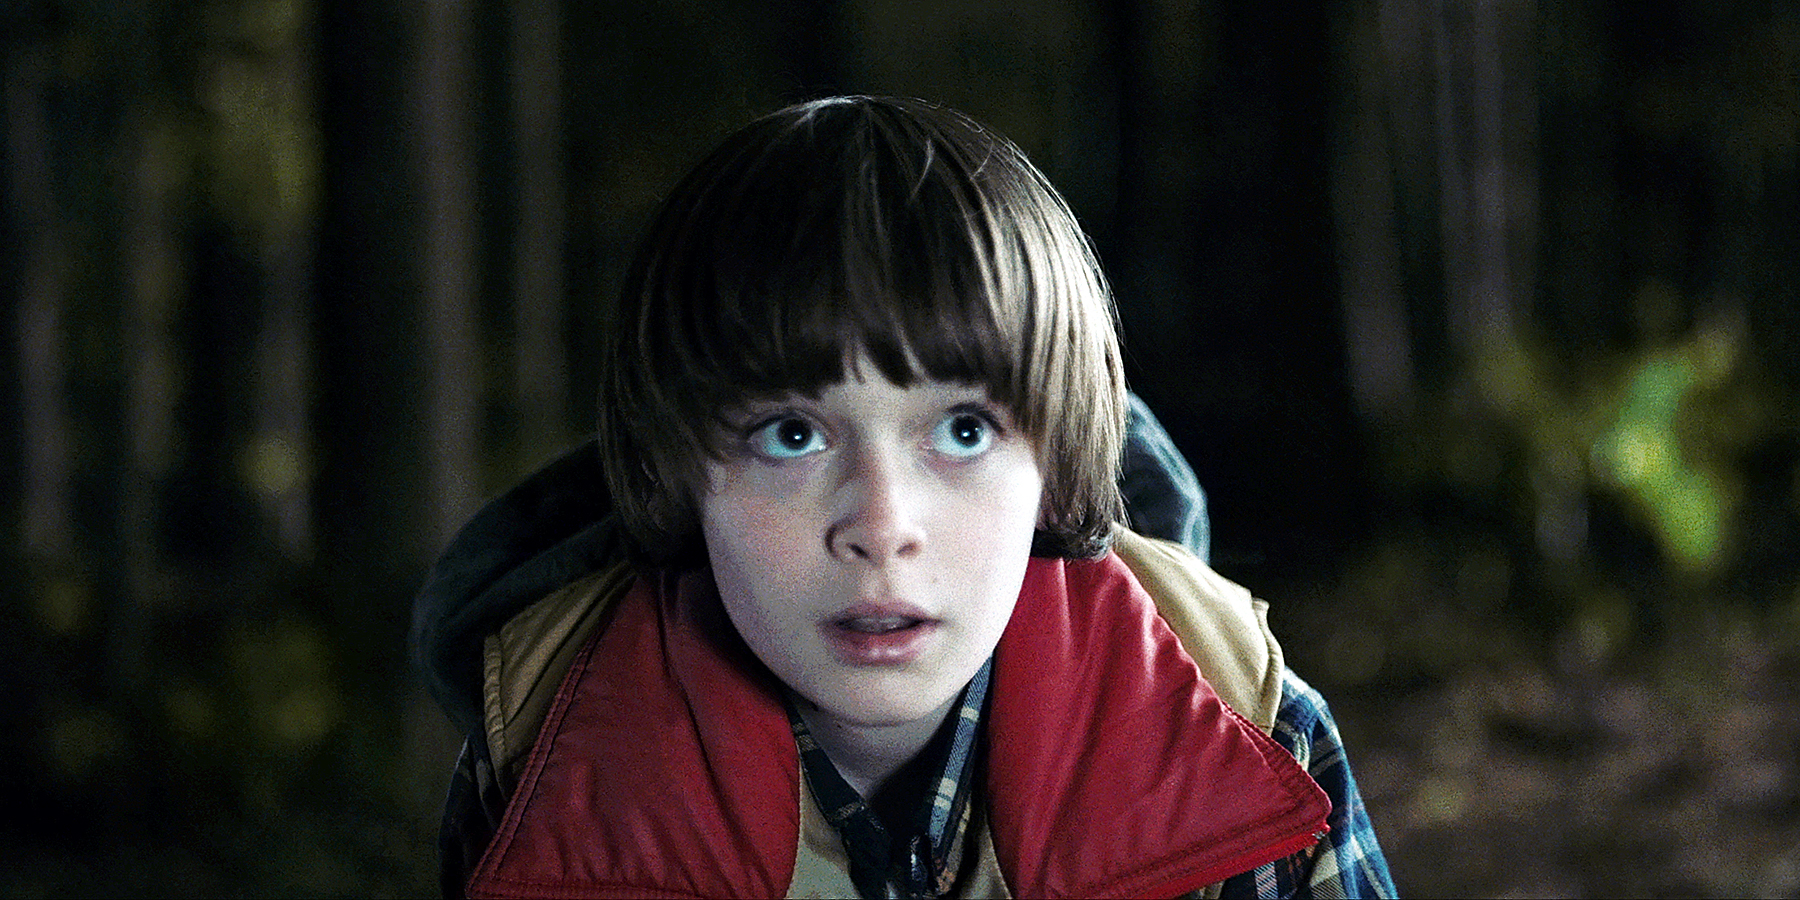 Stranger Things Creator Will Byers Has A More Sinful Role In